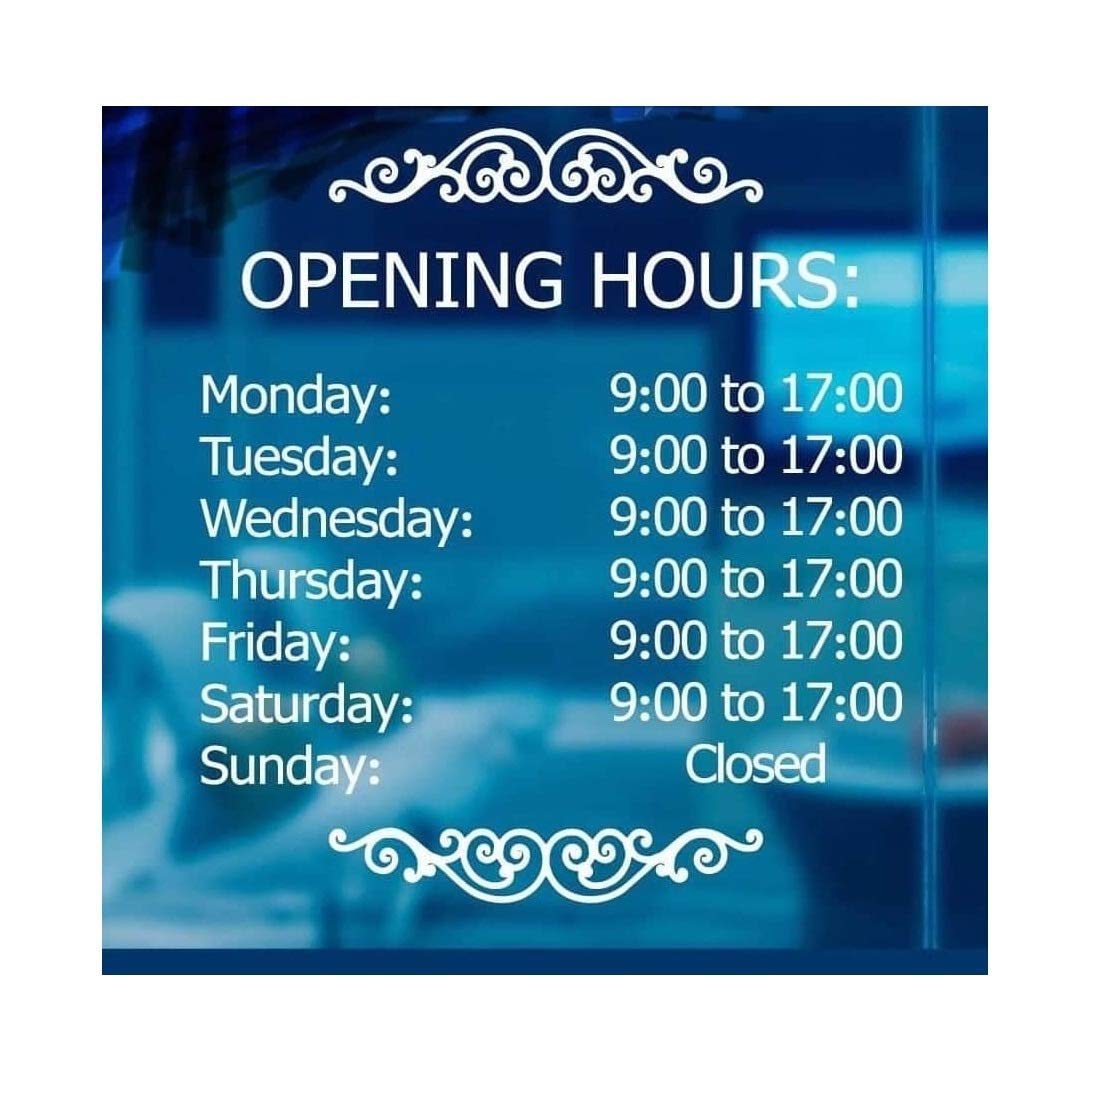 LokaUS Professional Business Hours Sign kit, 20''x20'' Changeable Signs for Business, Customize Window Sign for Business, Outside Hours of Operation Sign, Store Hours Sign Decal (Hours Sign) (White)